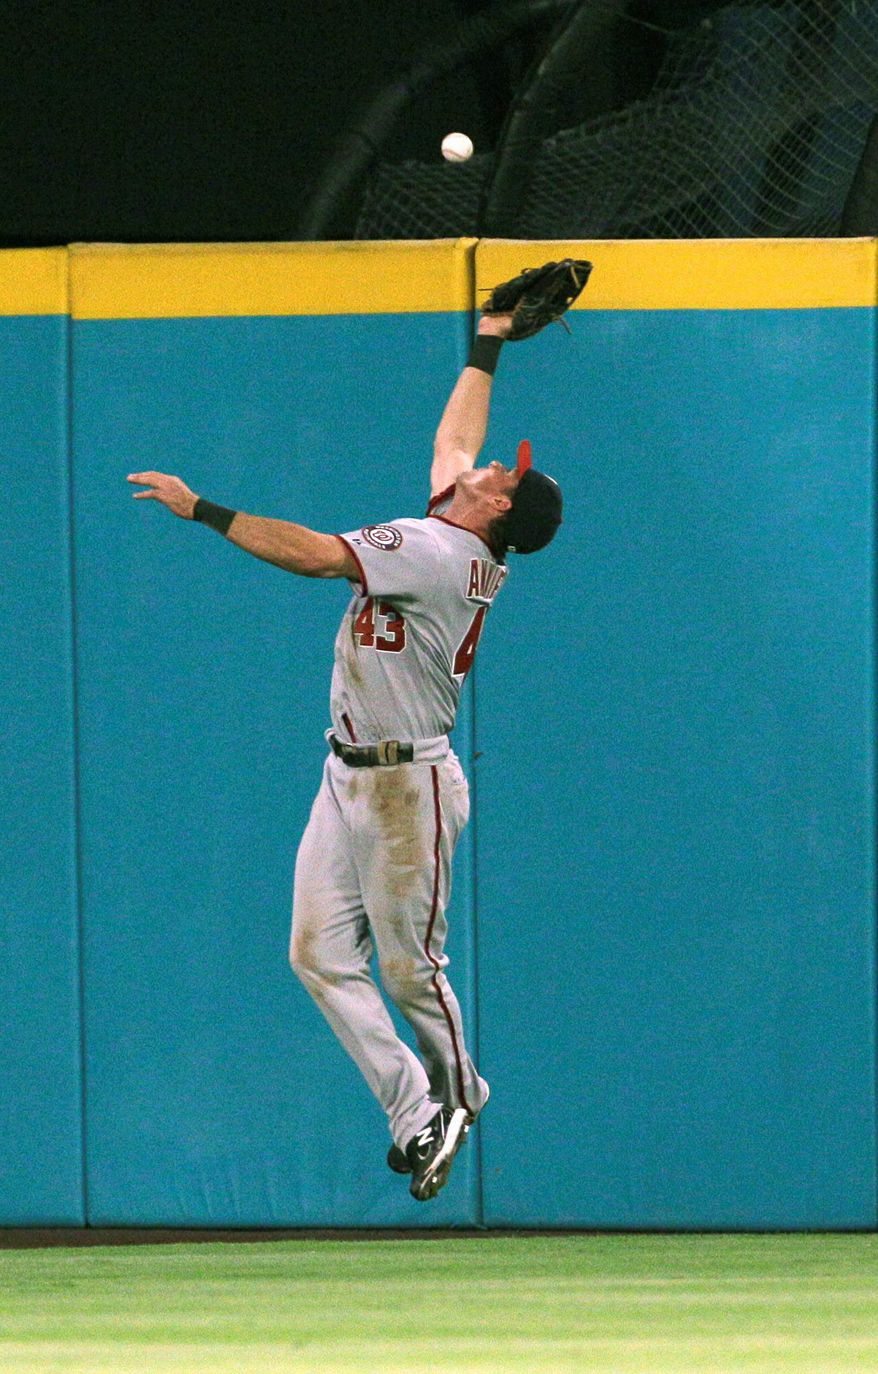 Washington Nationals' center fielder Rick Ankiel. (Associated Press)